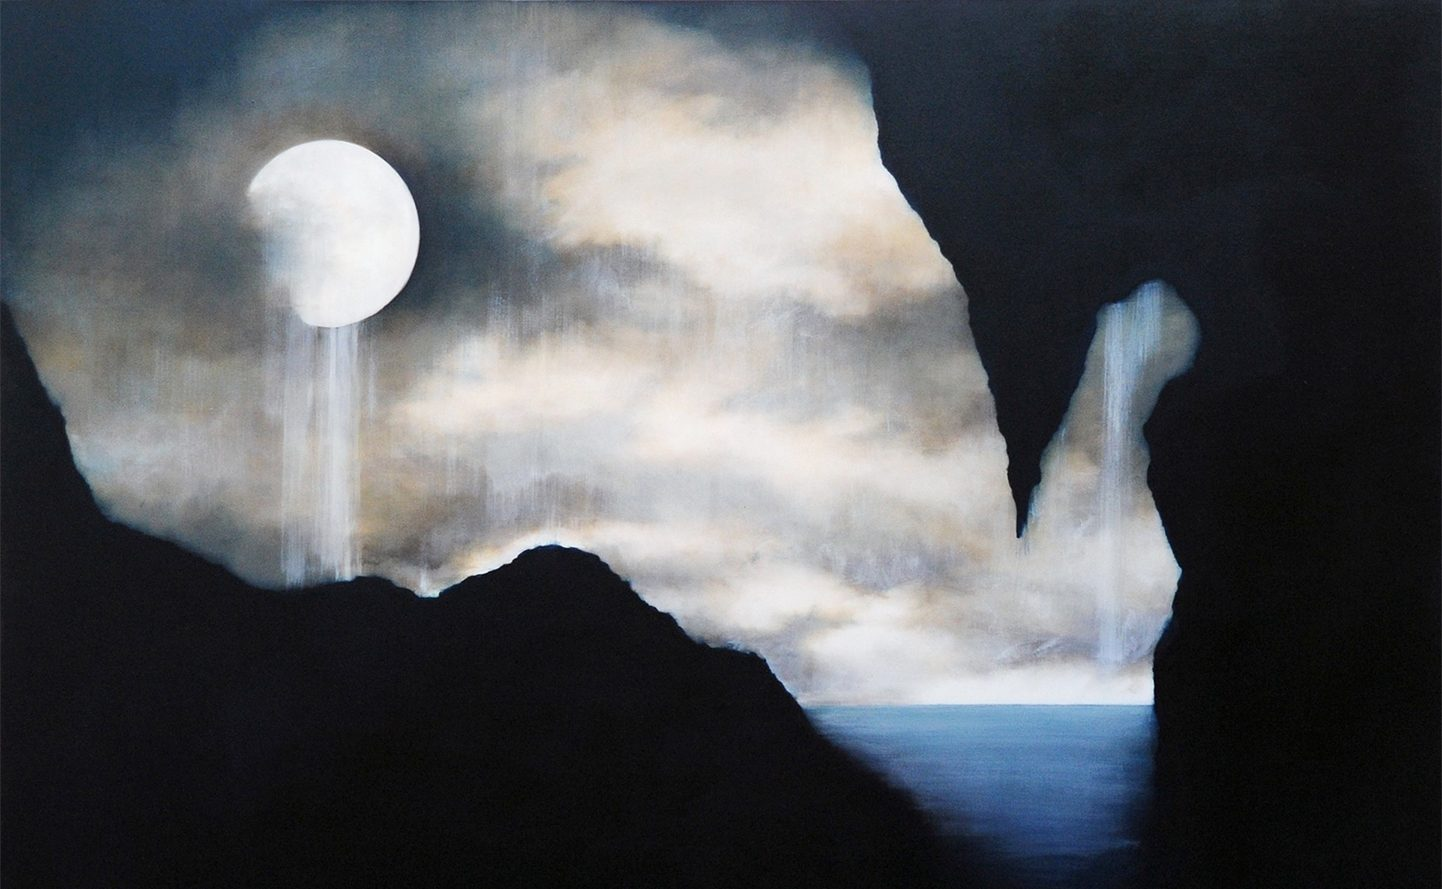 One moon Many Waters - Oil on Linen